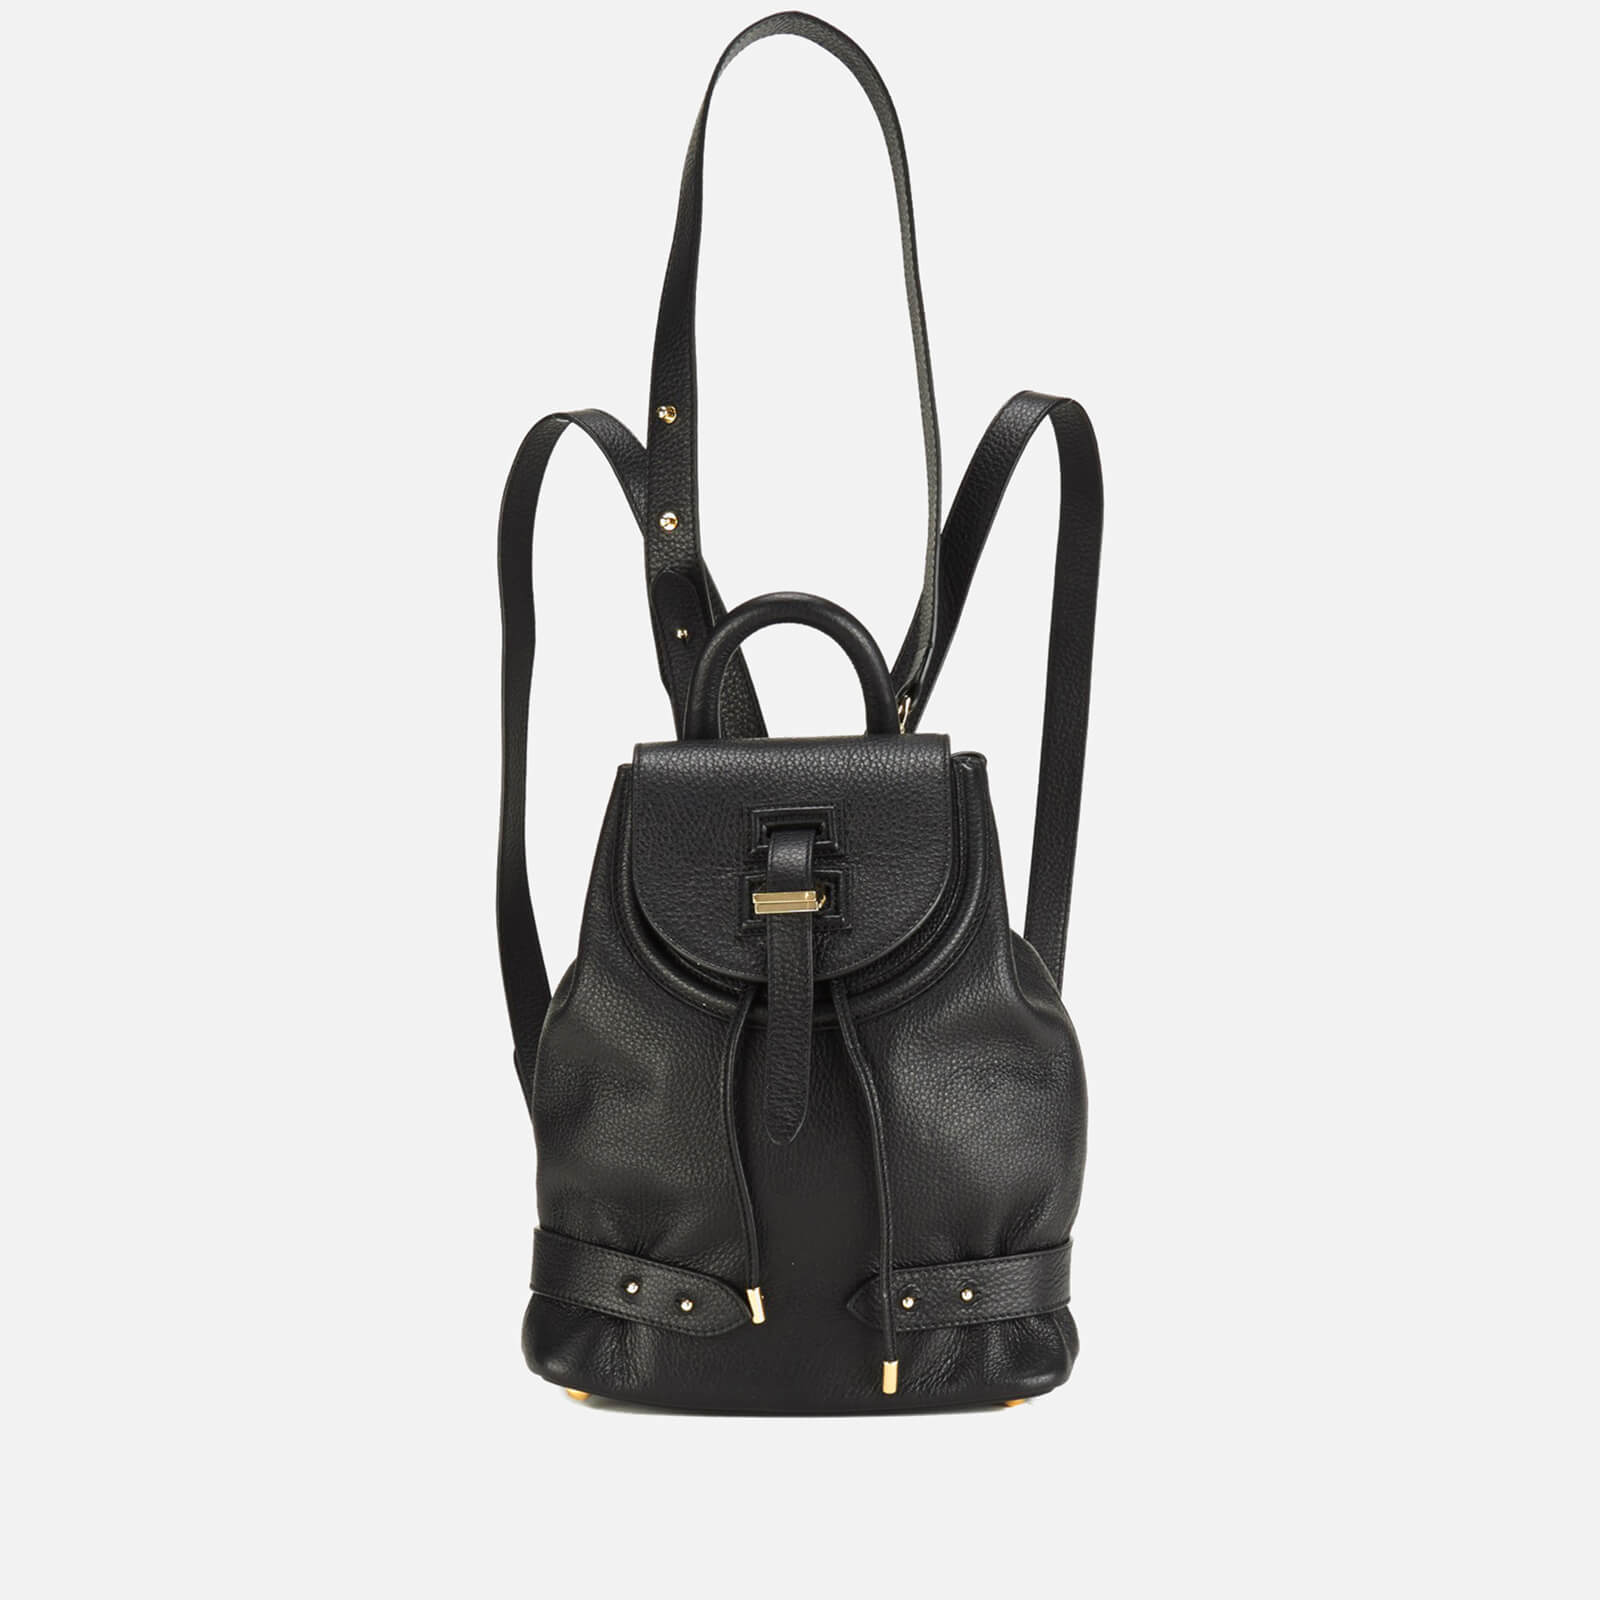 21518c4a04 meli melo Women s Thela Mini Backpack - Black - Free UK Delivery over £50